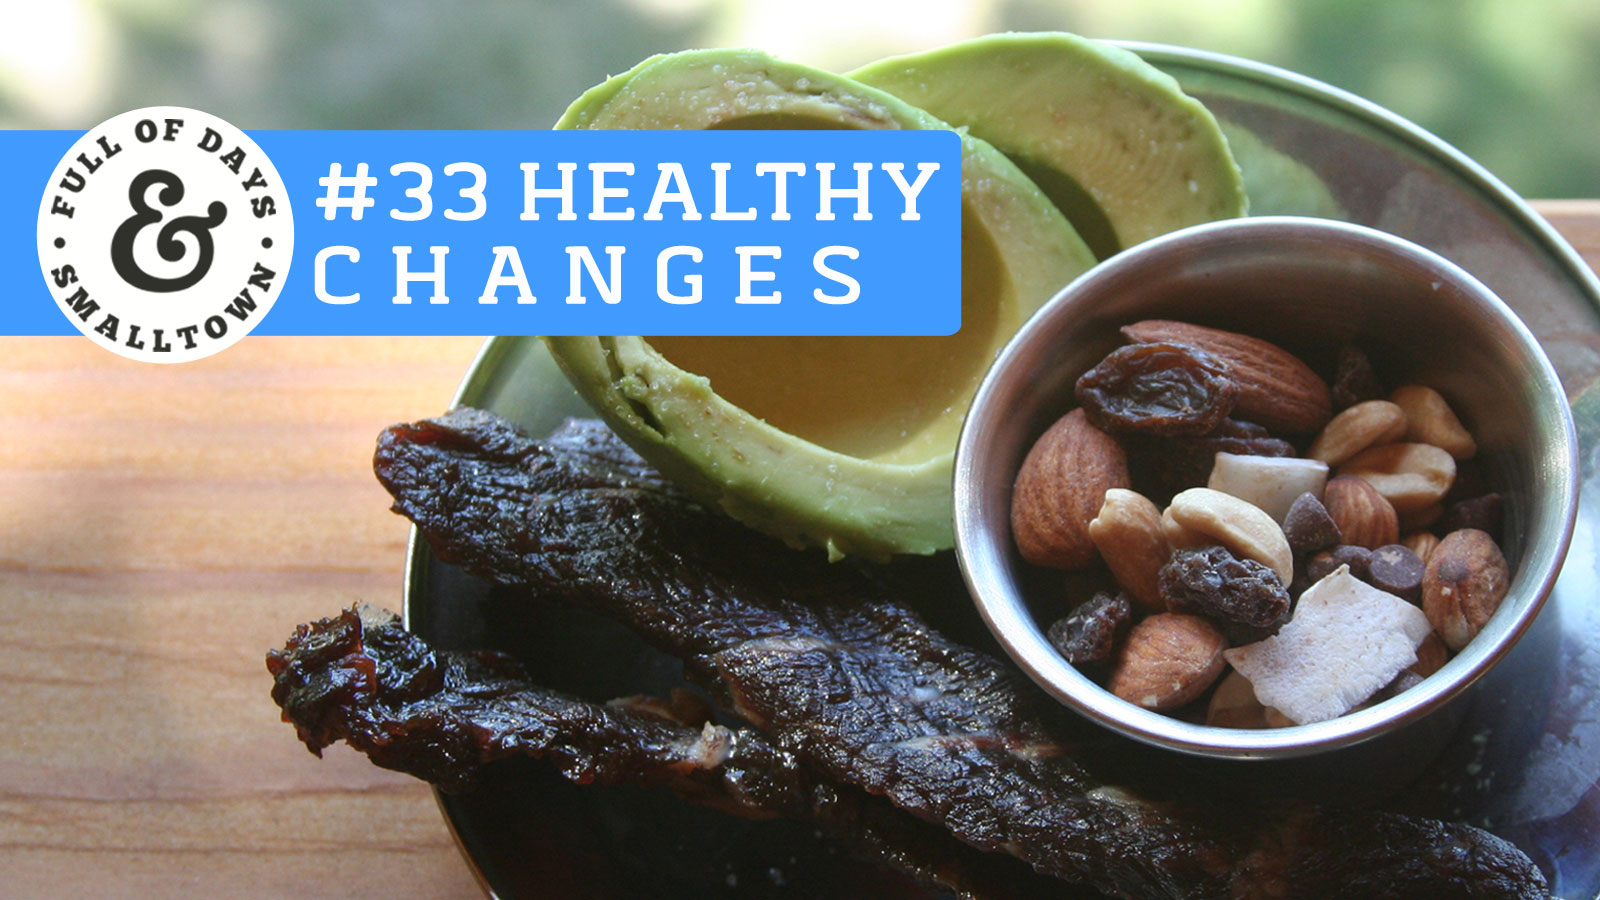 Healthy-Changes-33_Full-of-Days_Eat-Real-Food_1600-x-900